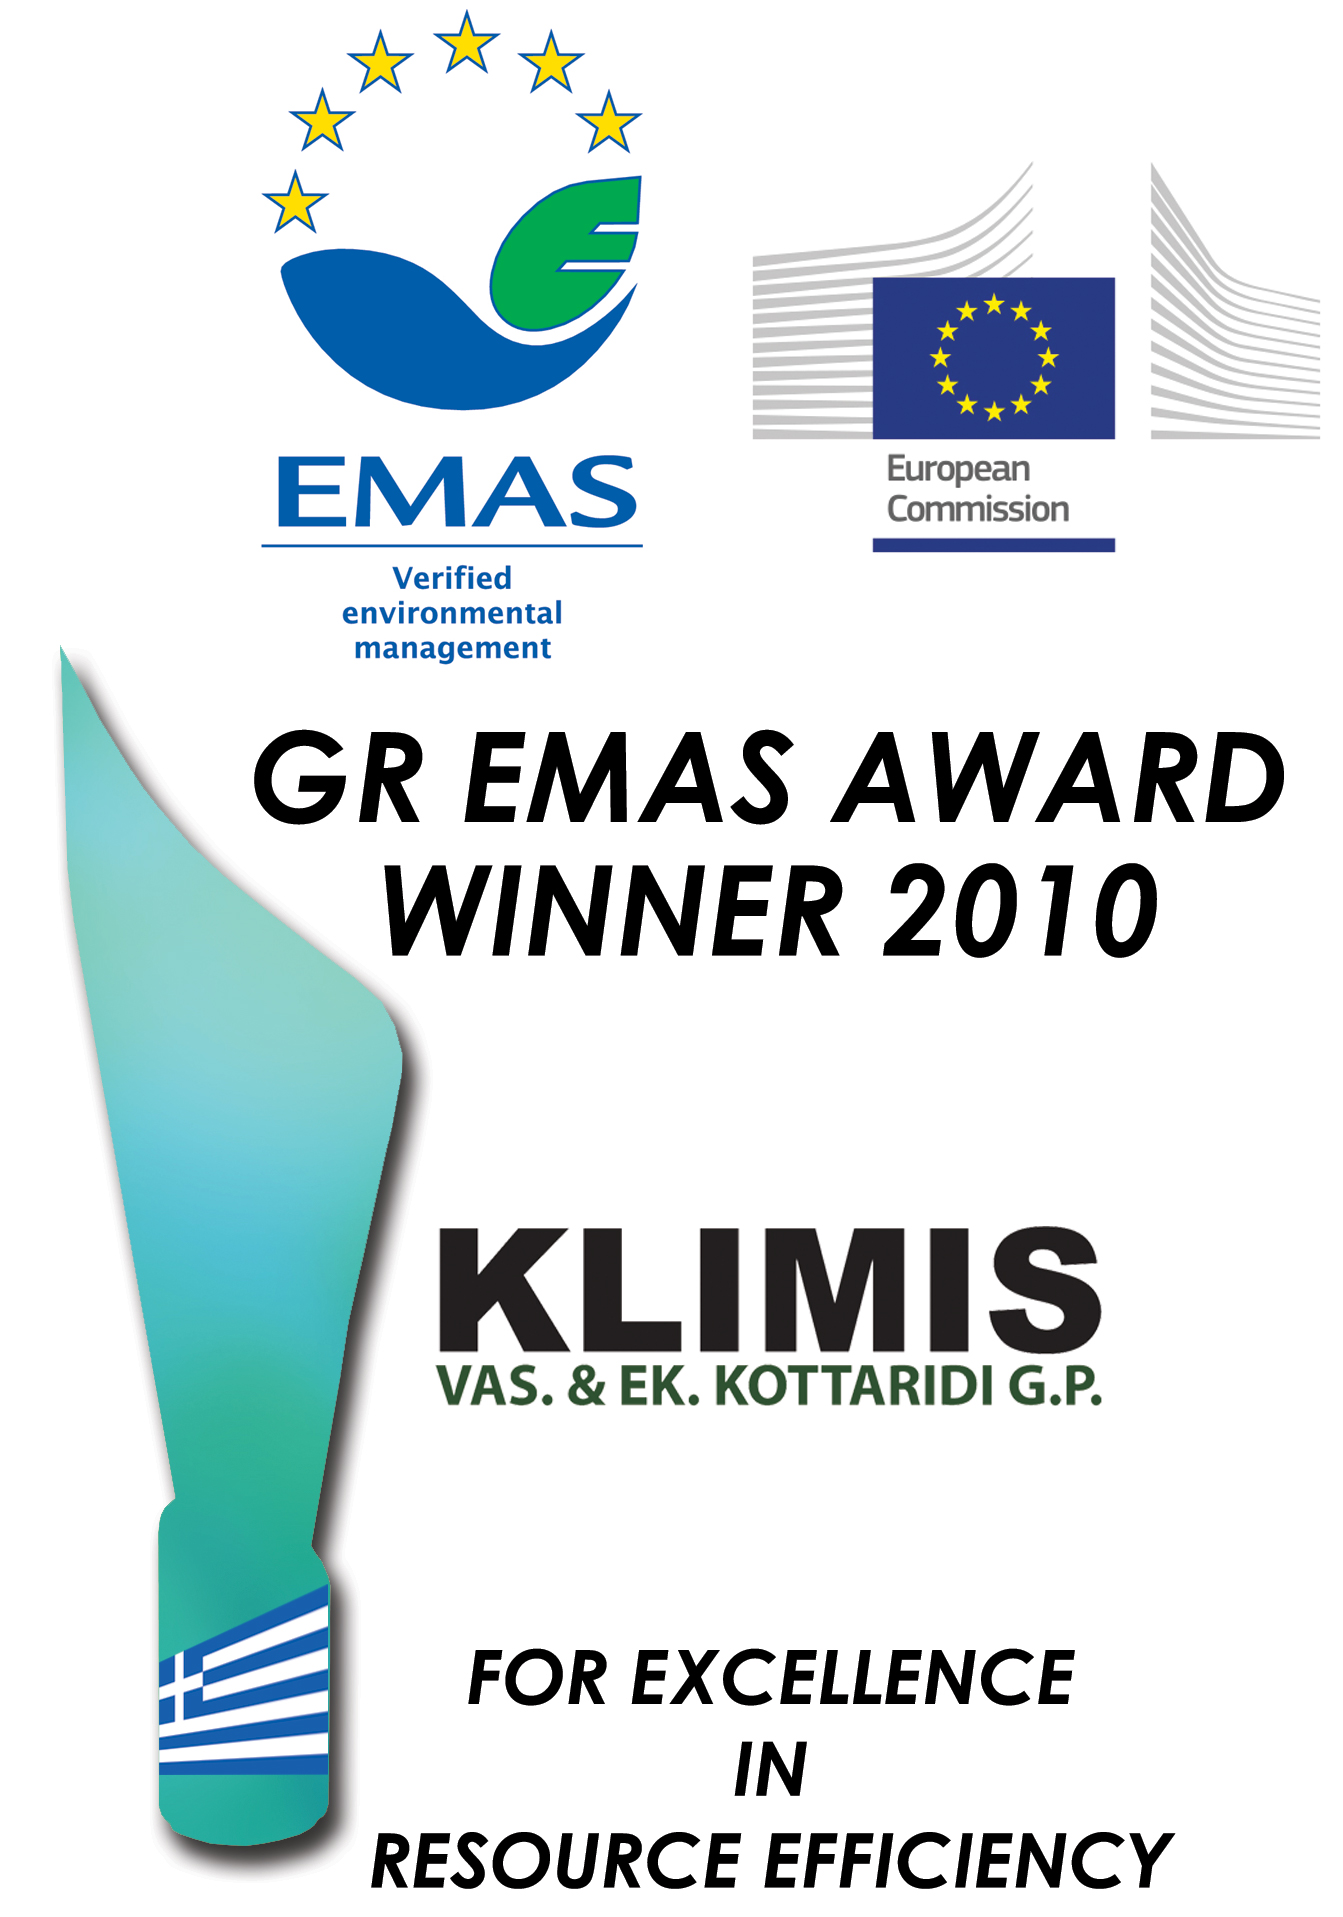 emas awards 2010